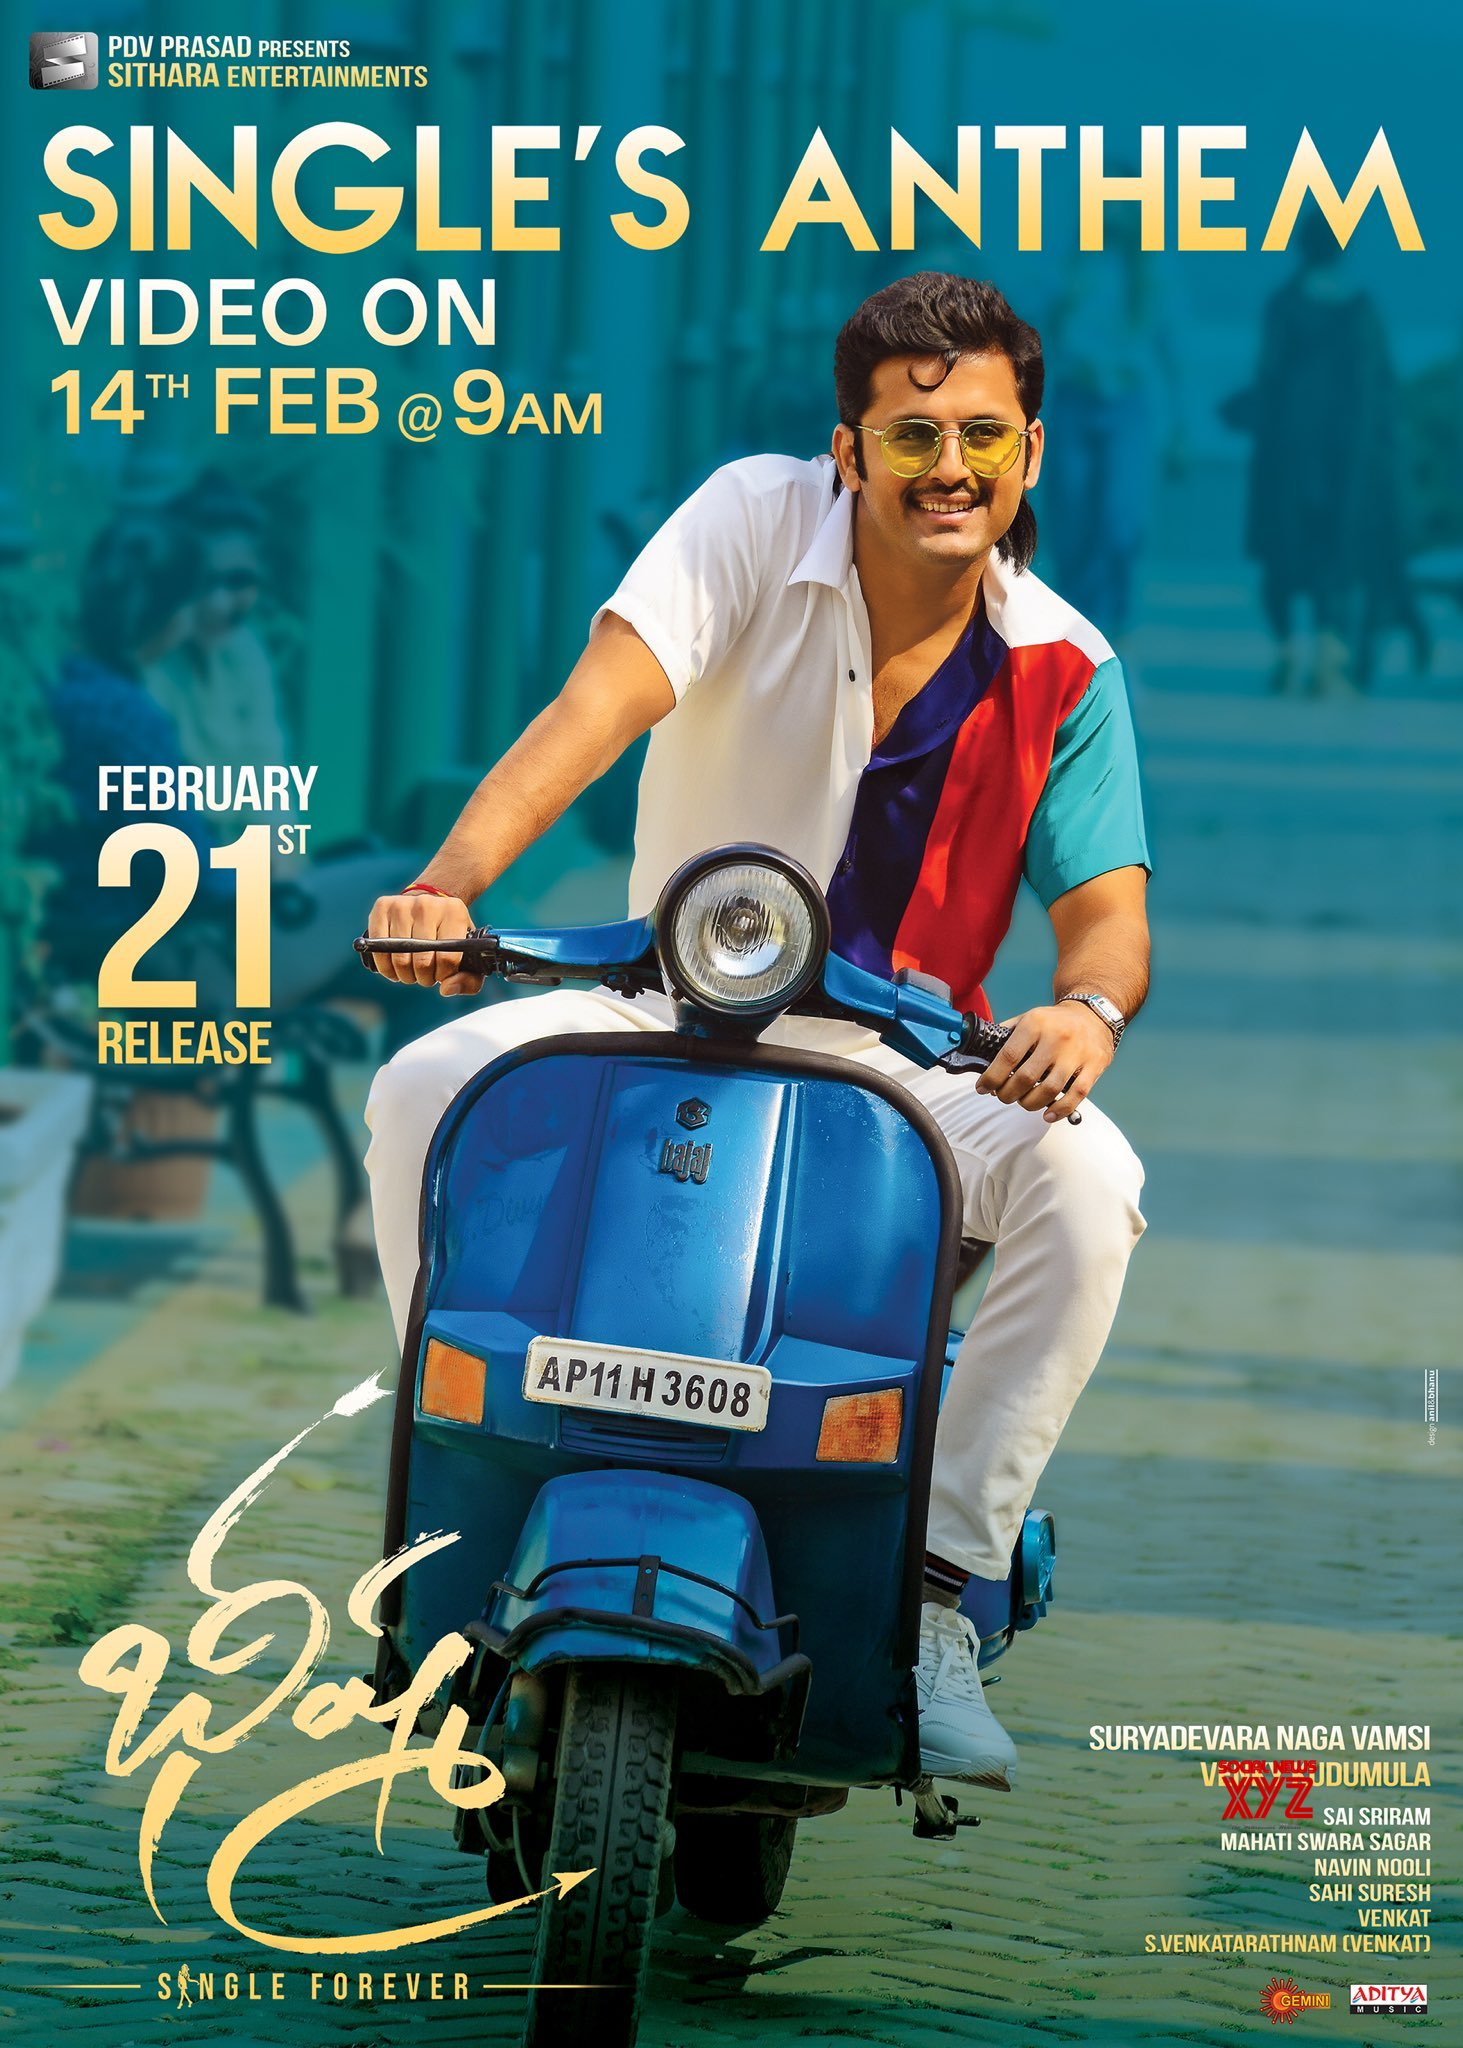 Bheeshma Movie Single S Anthem Video Will Be Out On Feb 14th At 9 Am Social News Xyz